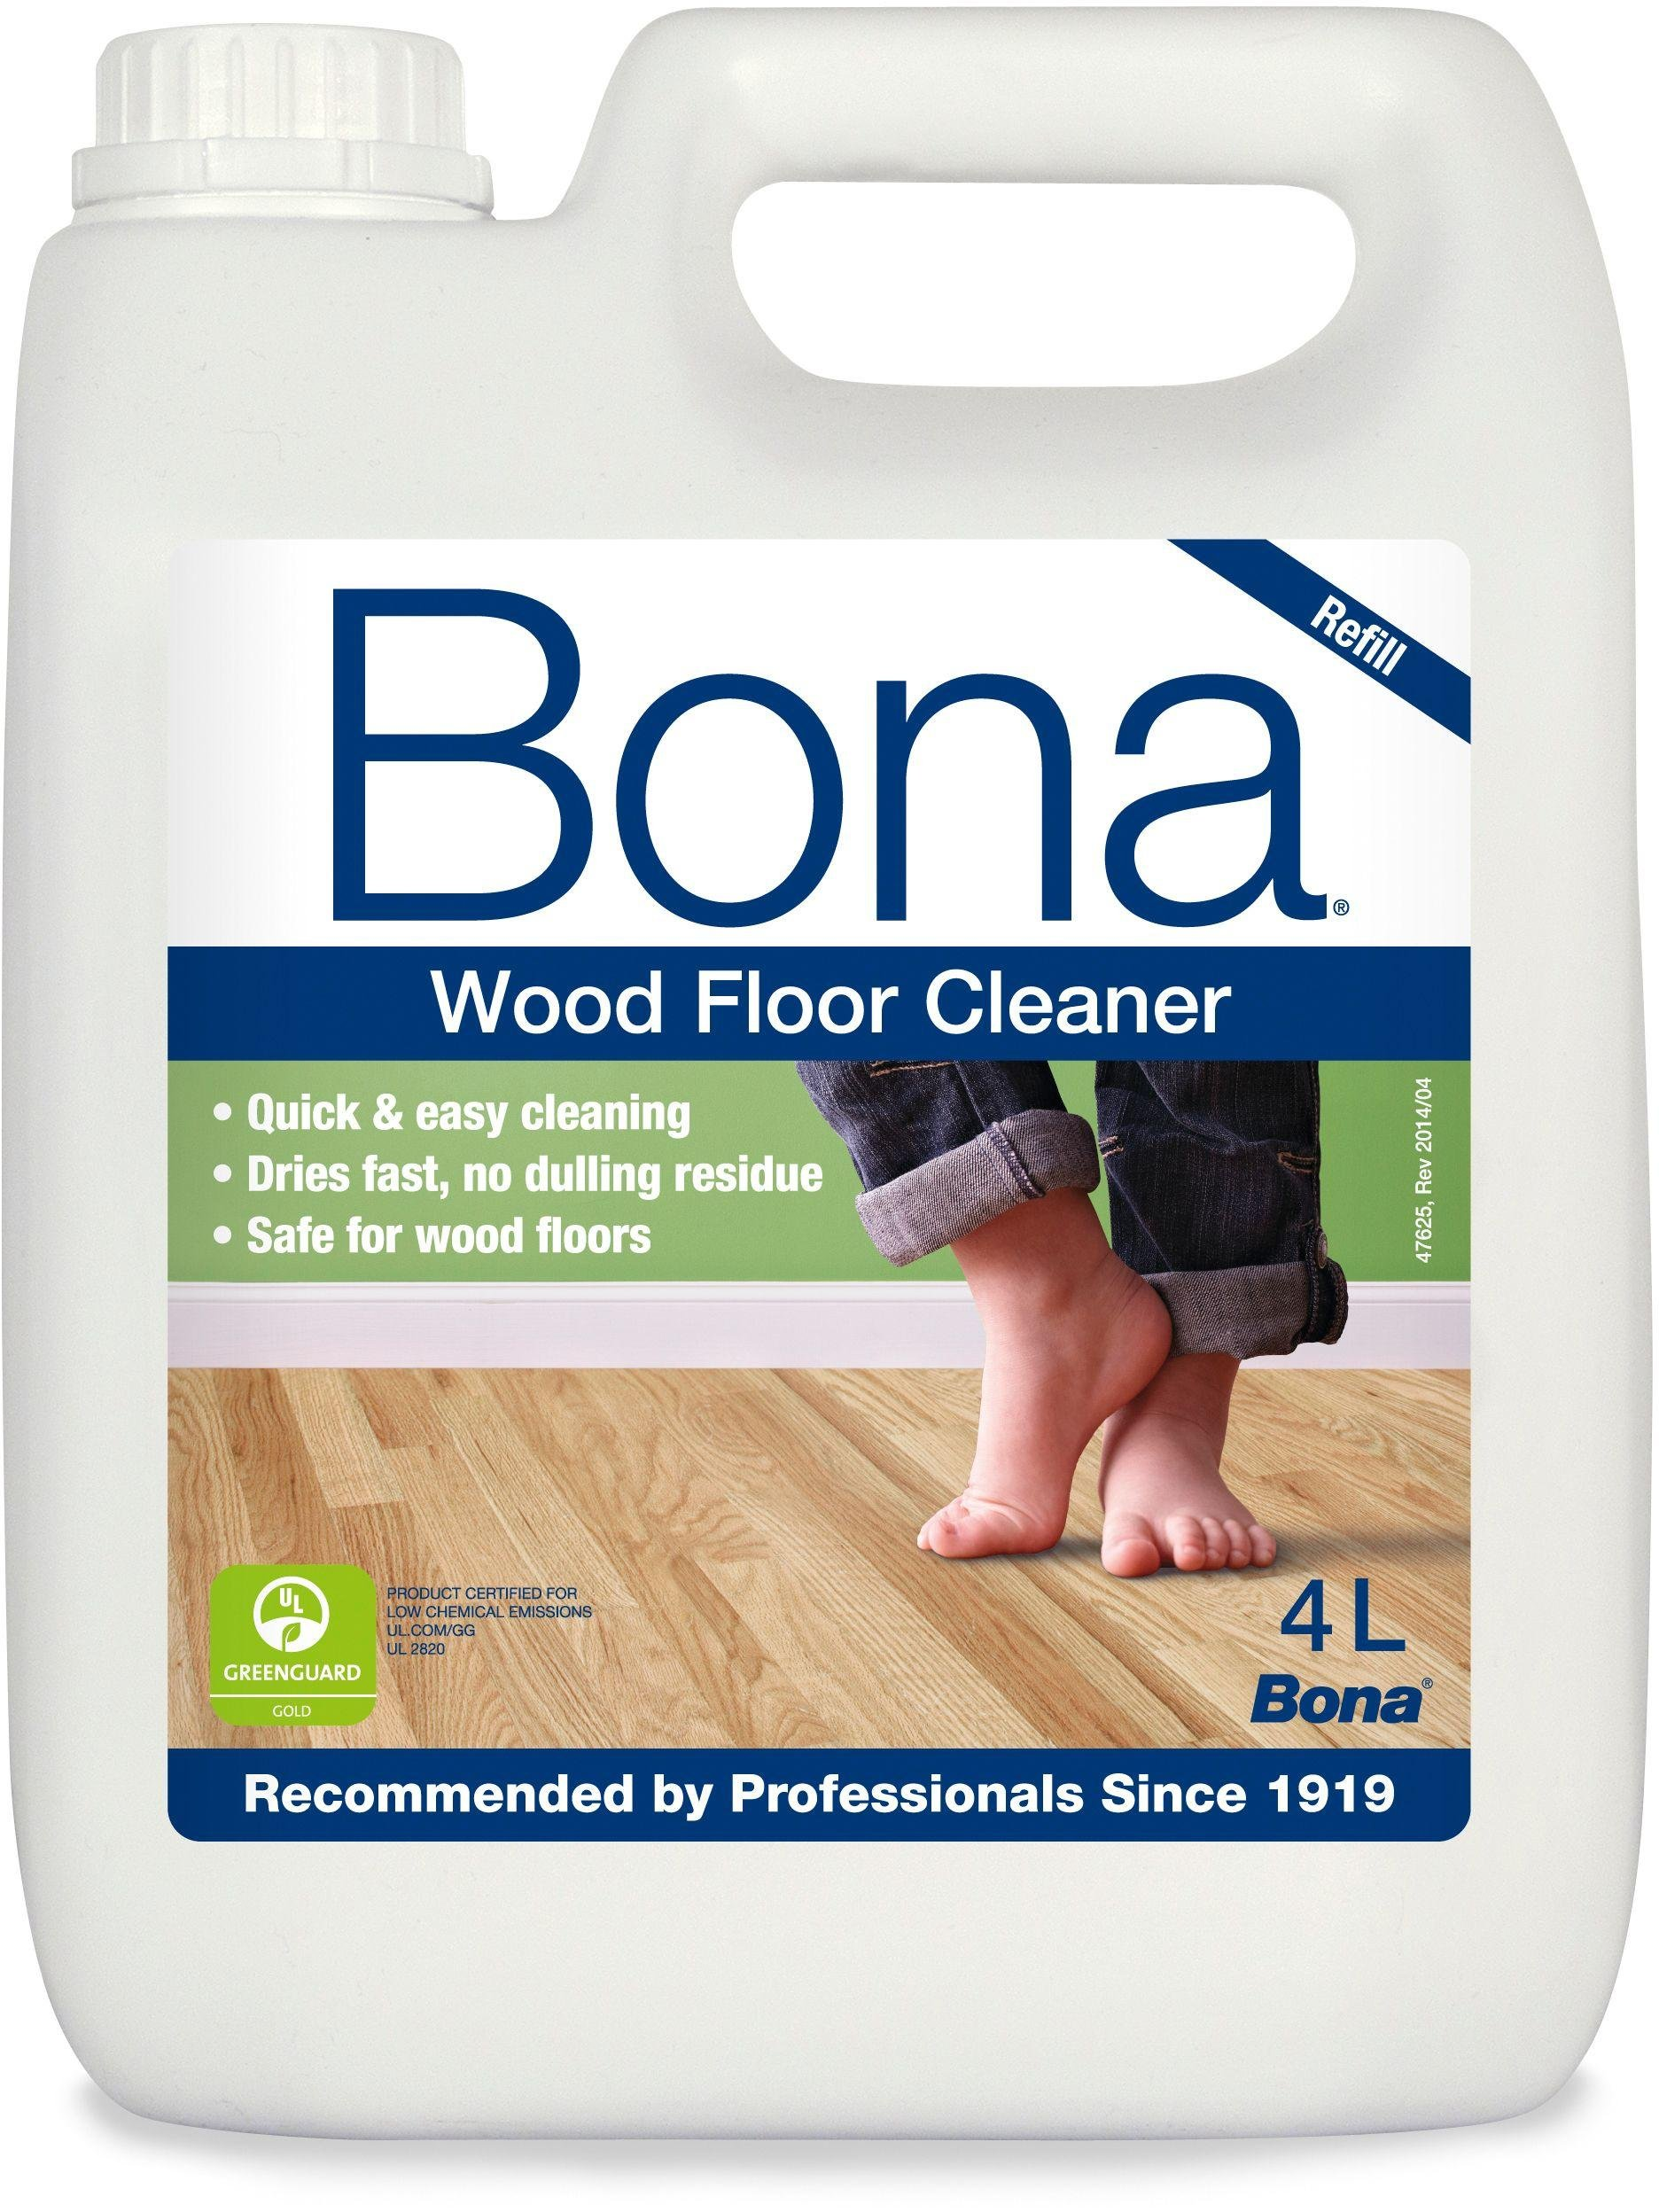 bona-4l-wood-floor-cleaner-refill